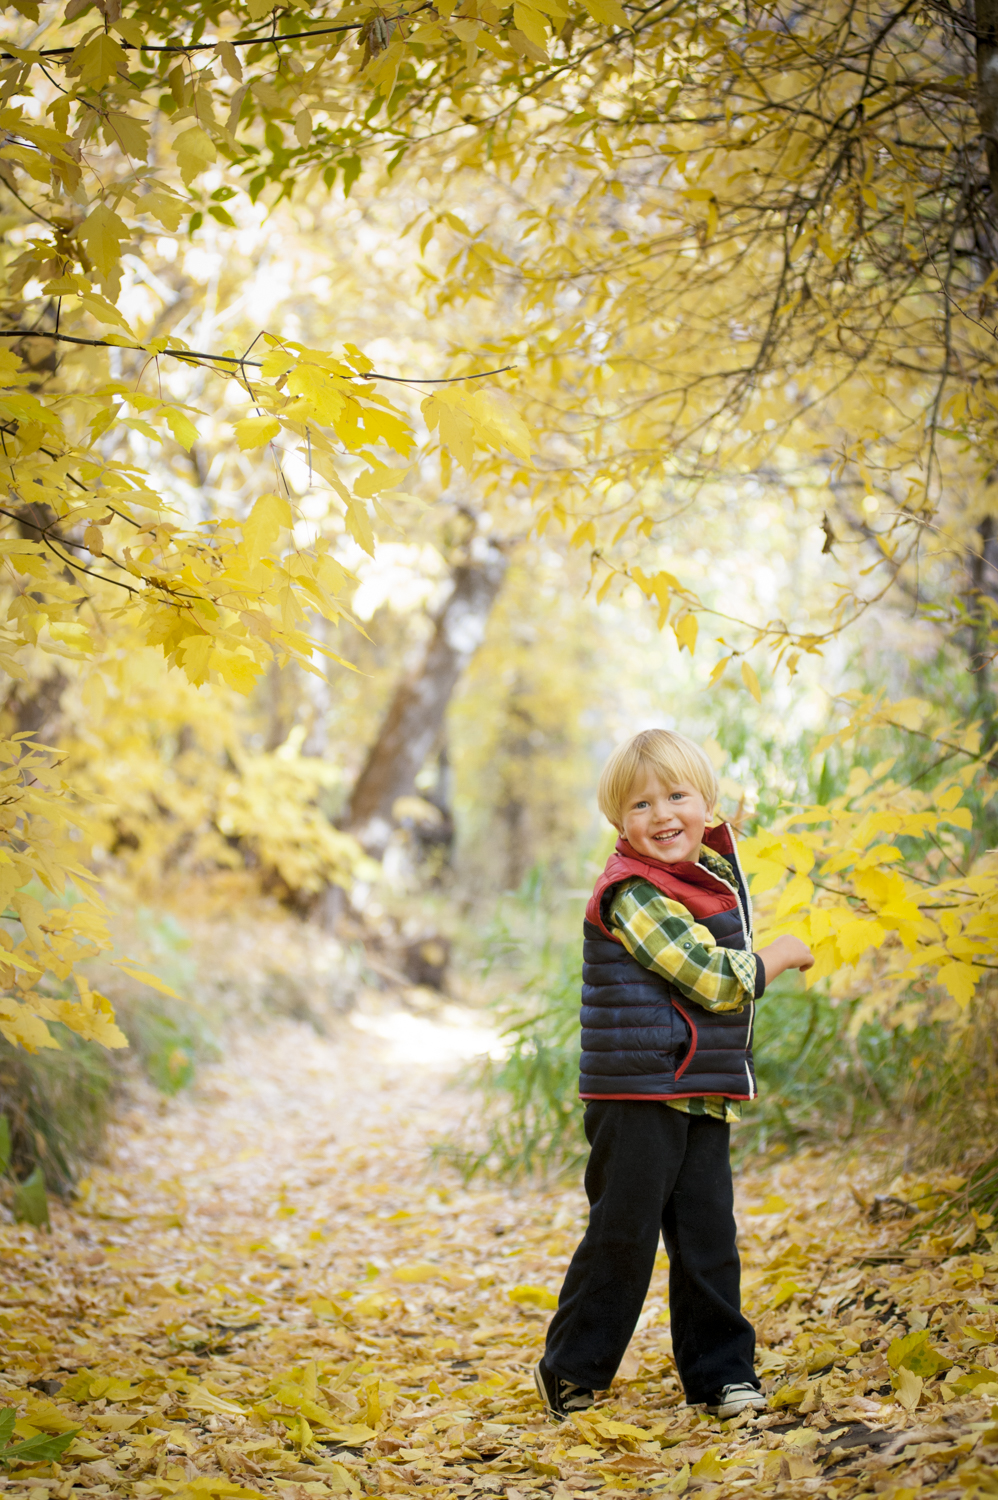 fall_lifestyle_family_leaves_candid_playing-018.jpg